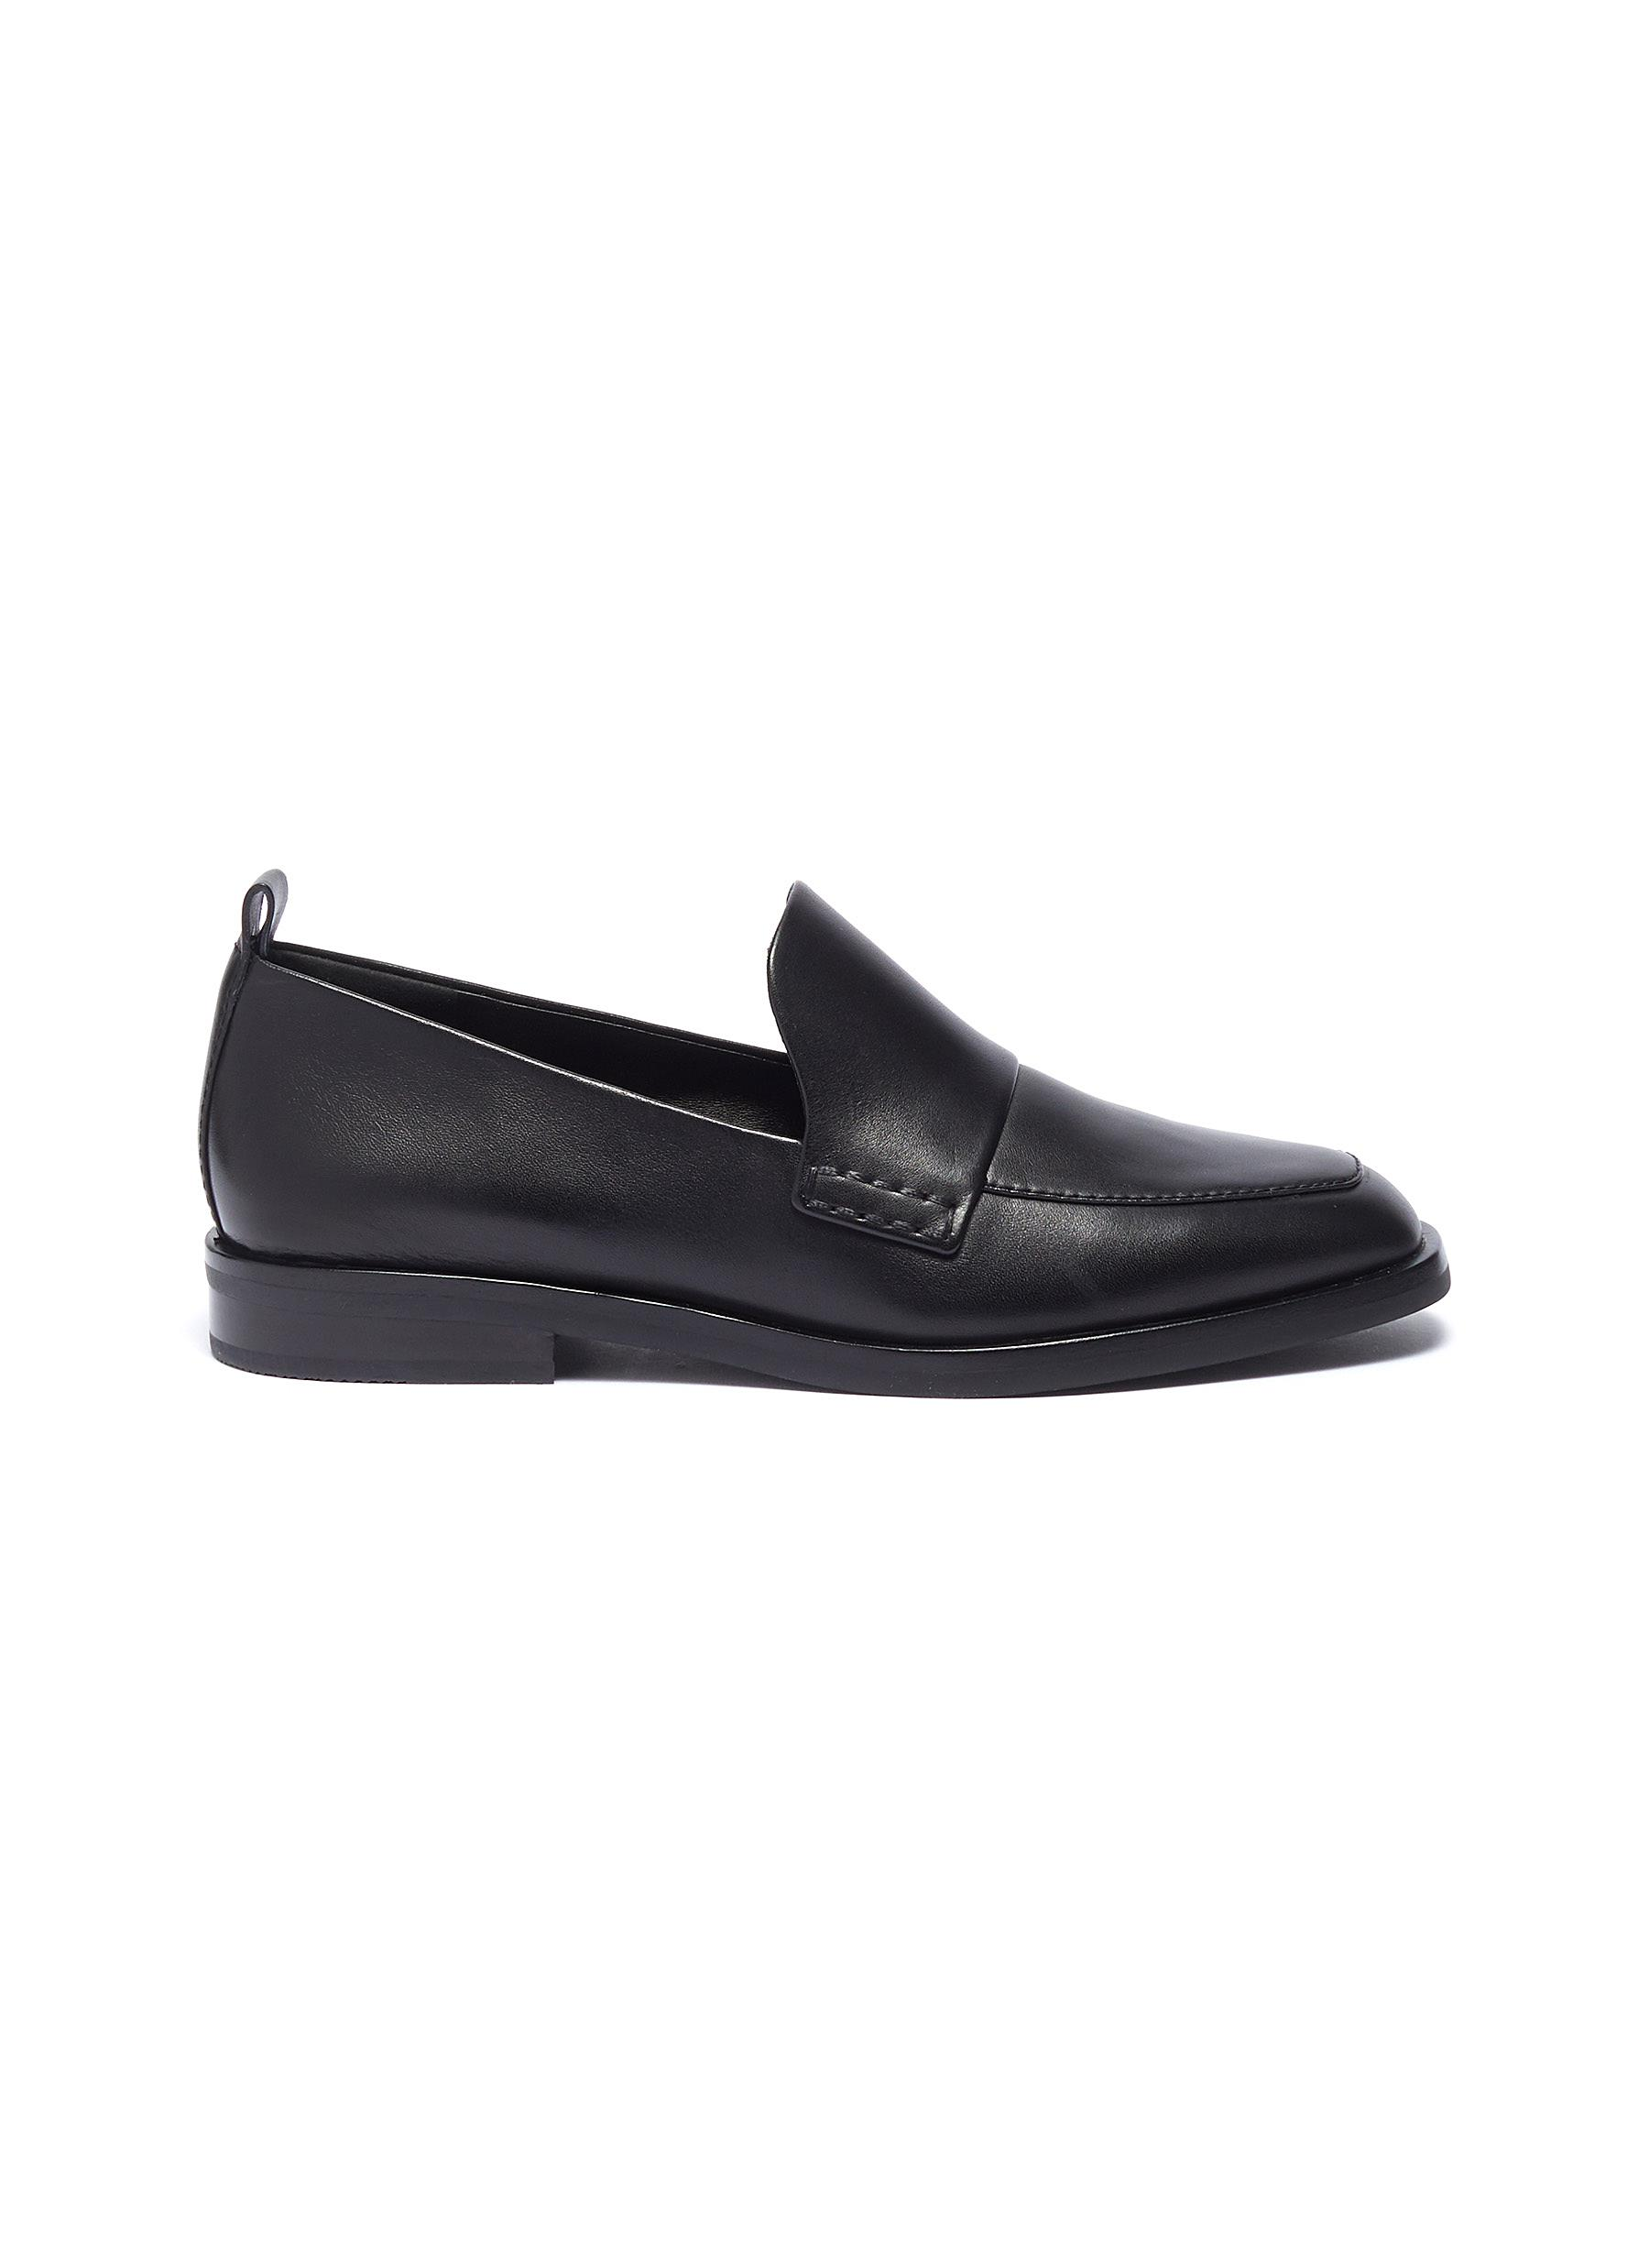 Alexa leather loafers by 3.1 Phillip Lim